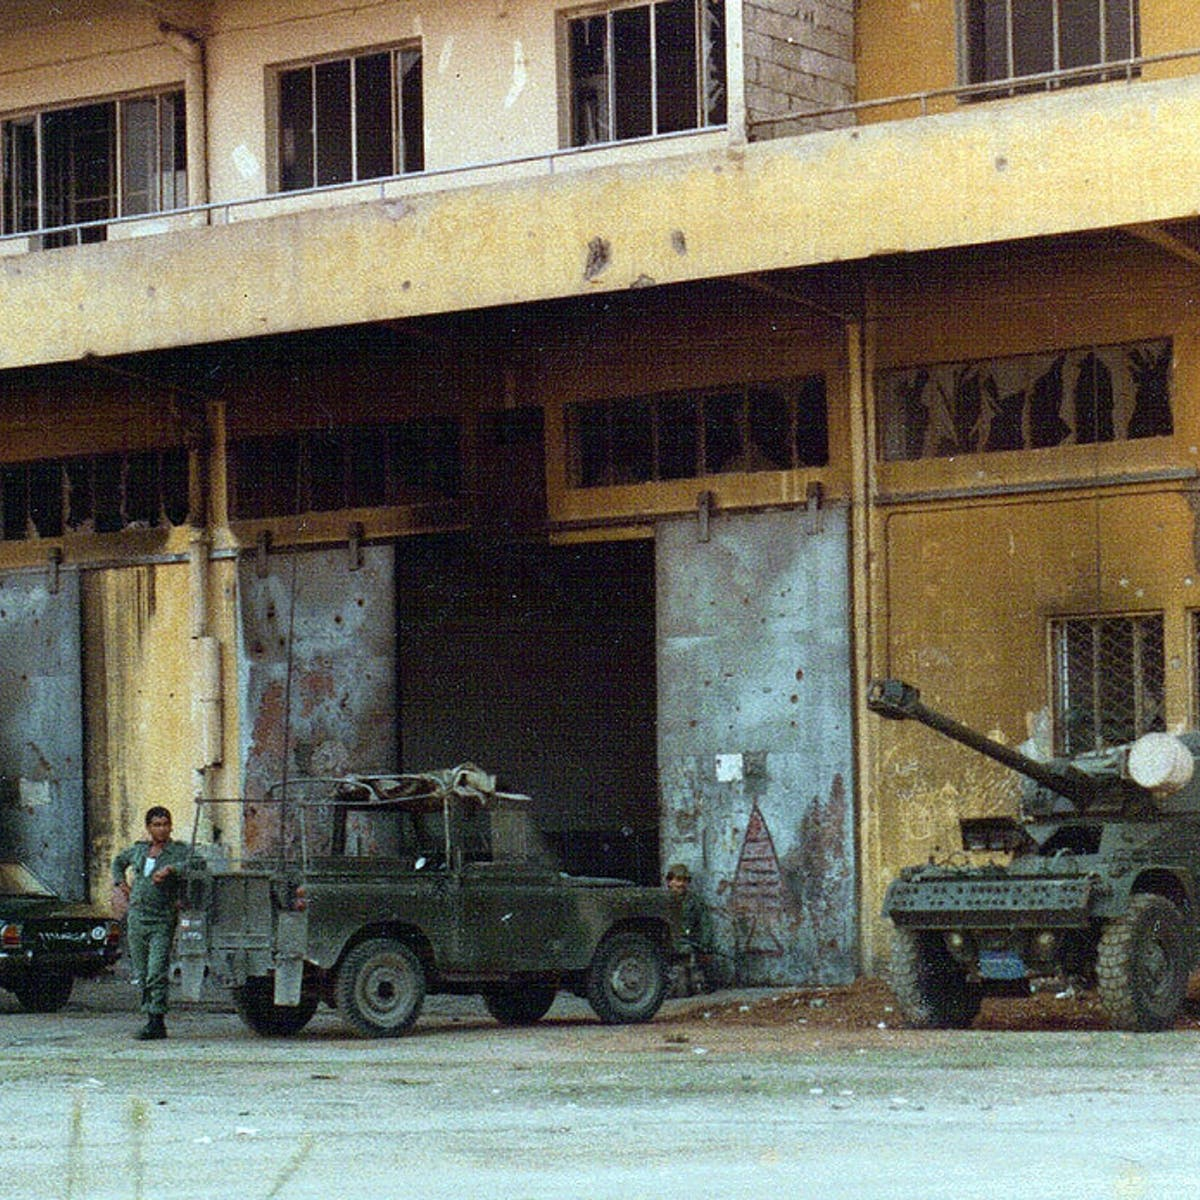 Electricite Du Liban Telephone nostalgia for war: does the lebanese state function worse